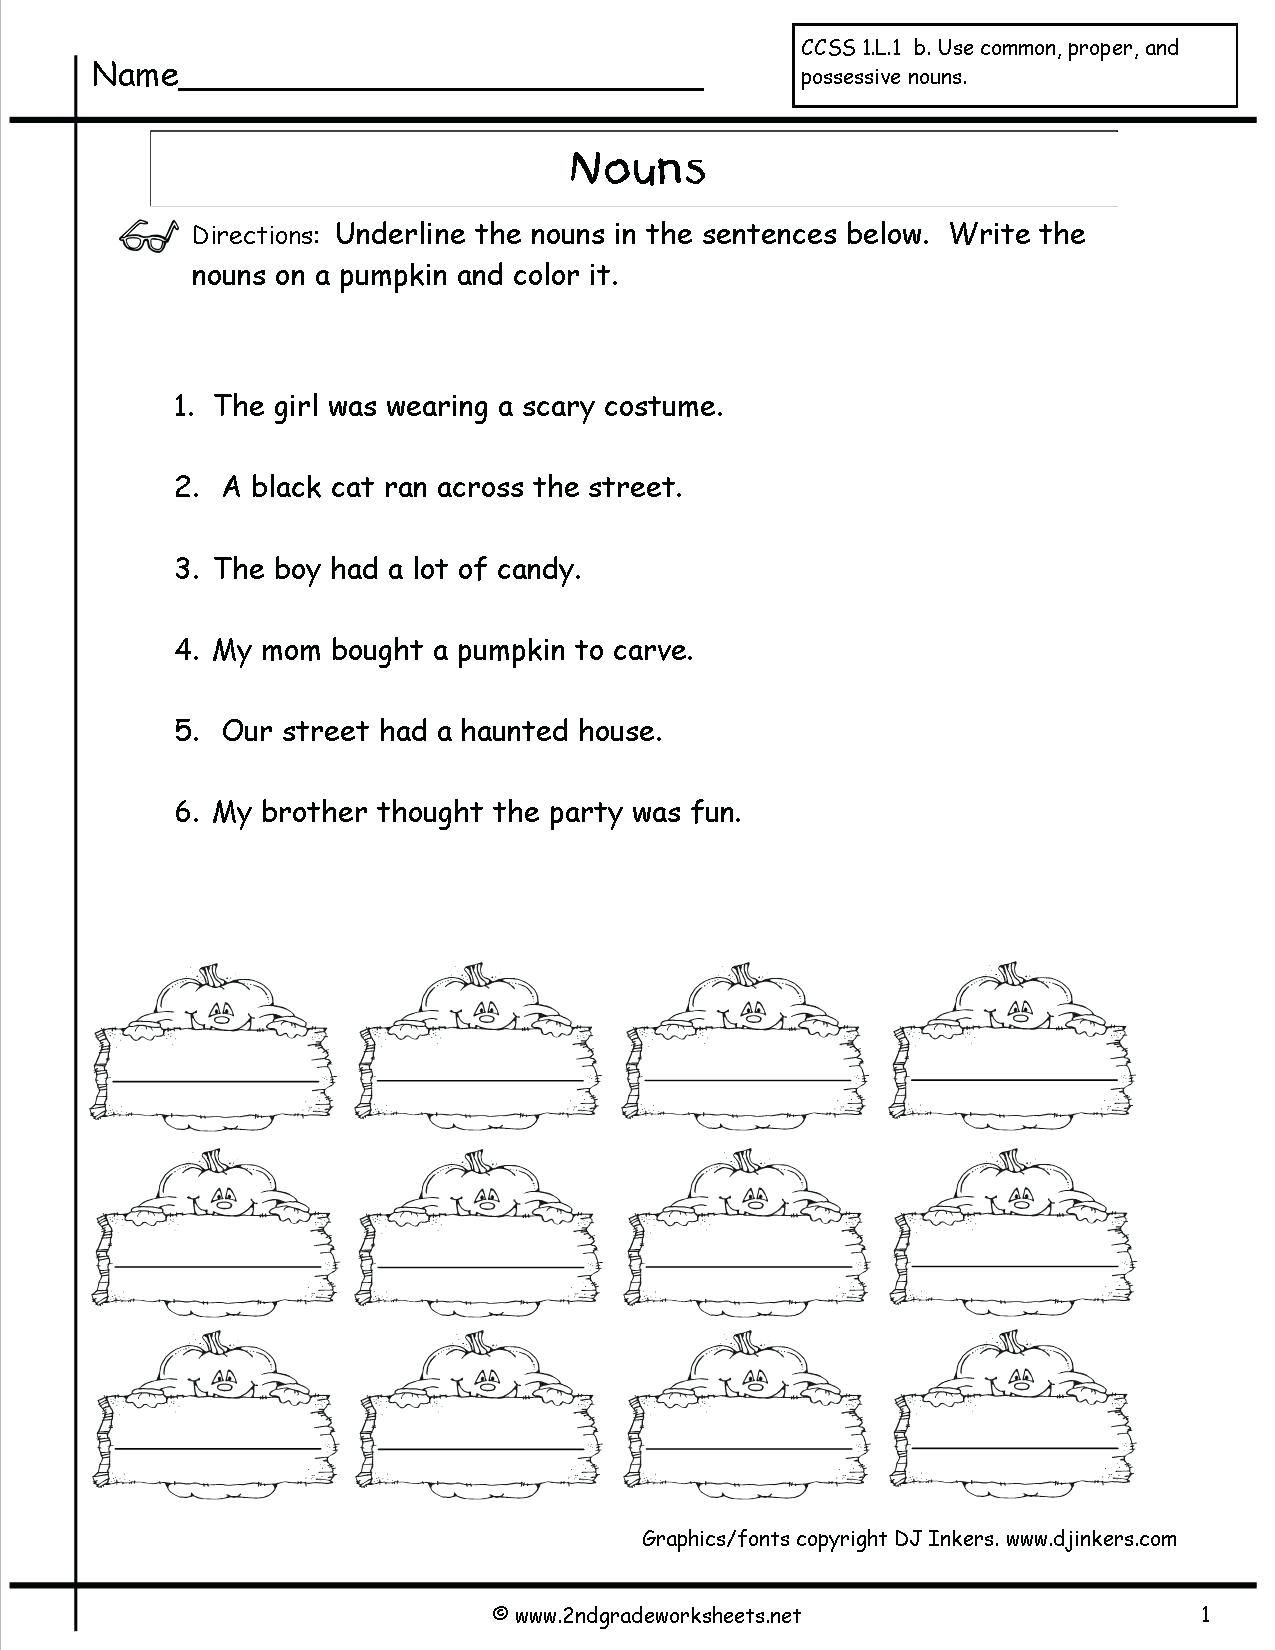 Possessive Nouns Worksheet 2nd Grade 37 Clever Possessive Nouns Worksheets Design